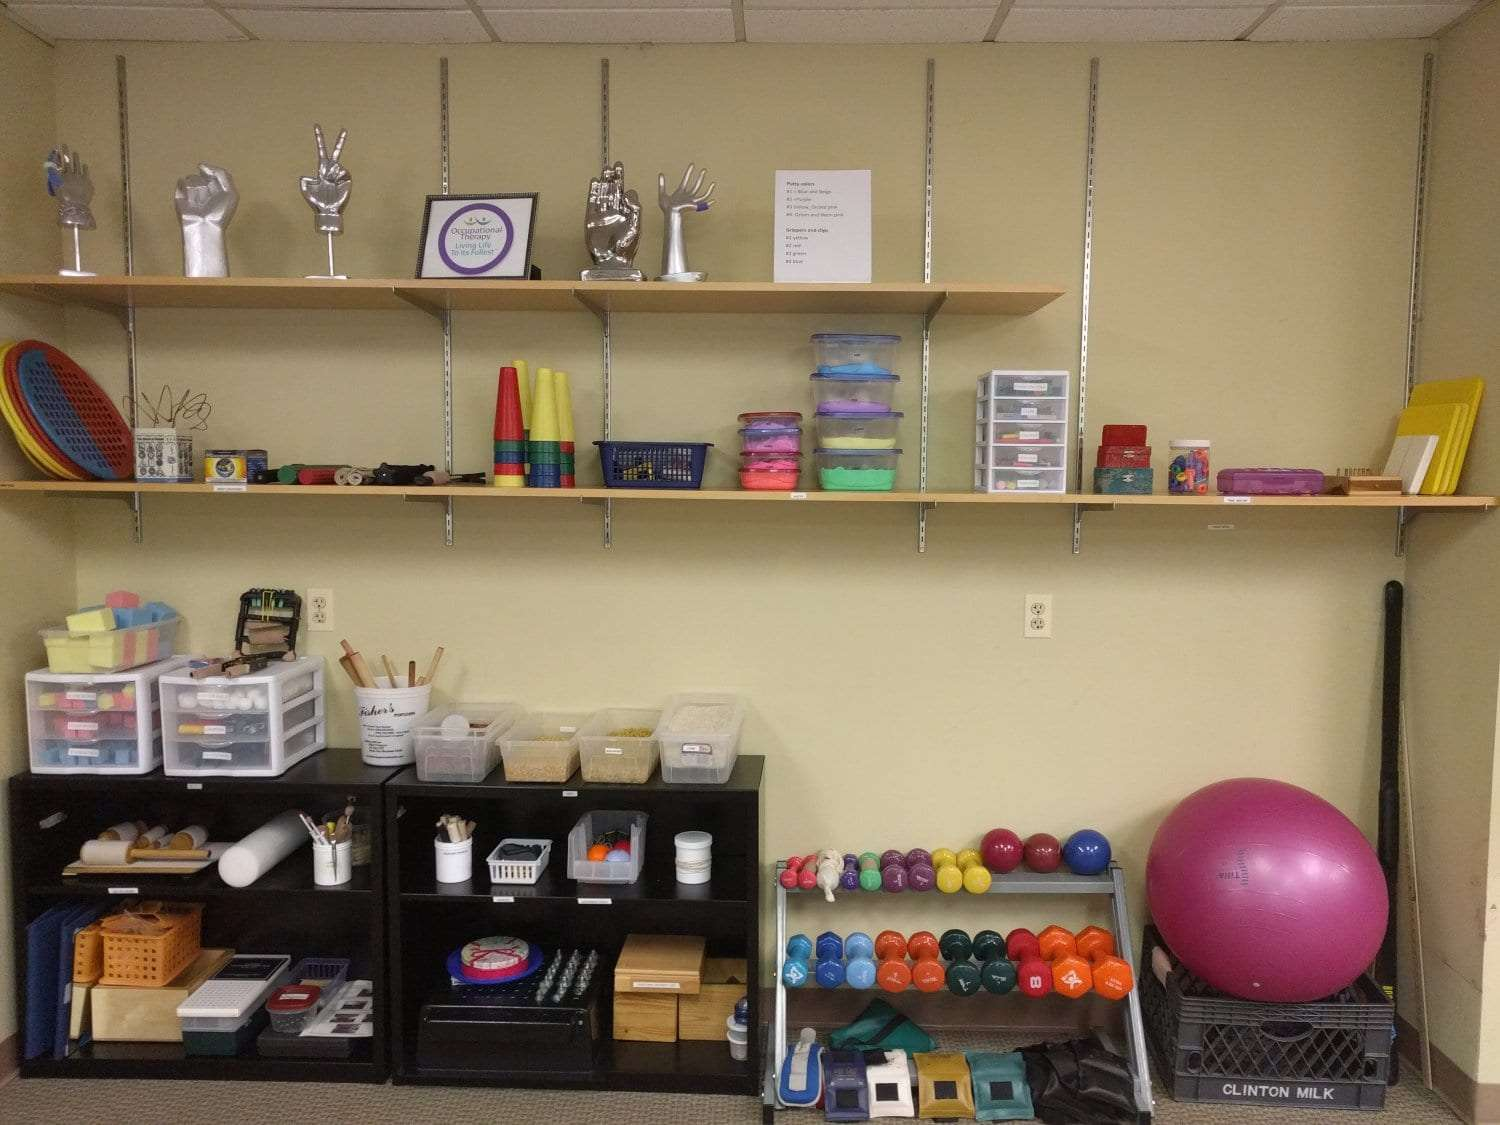 This is a shot of some of the equipment used at our physical therapy clinic in West Orange New Jersey.